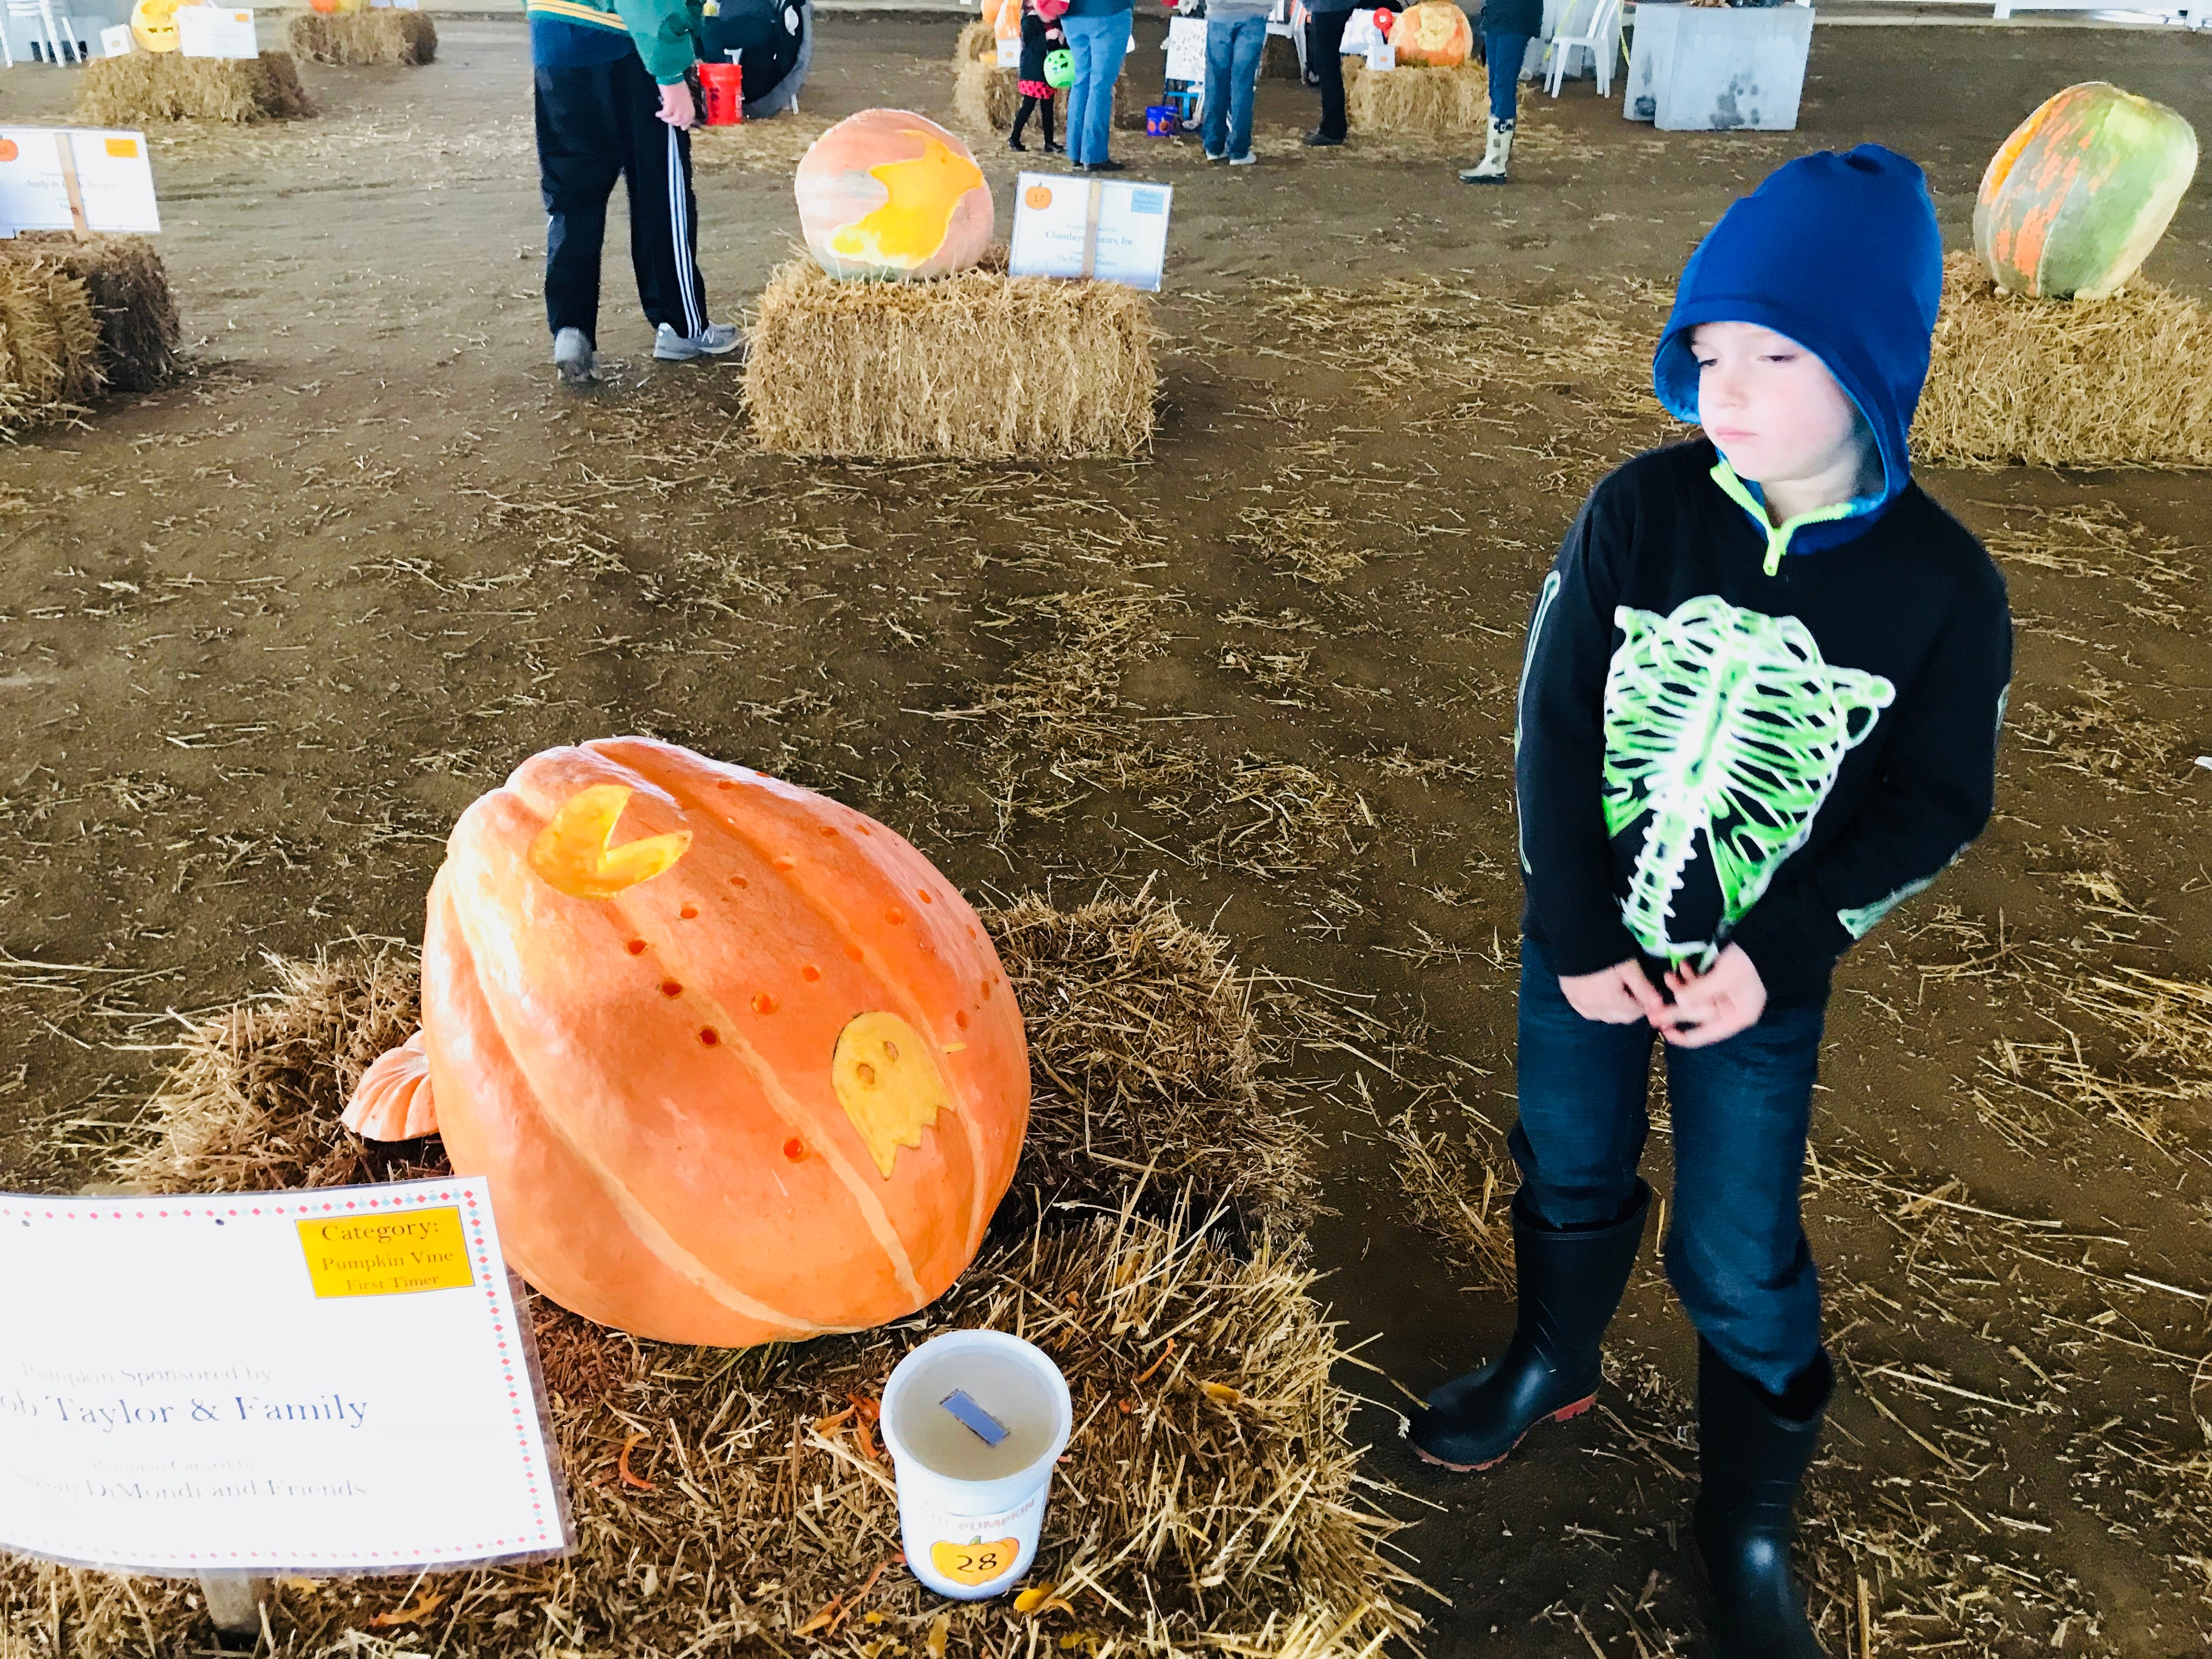 This young visitor just isn't too sure about the Pac-Man pumpkin at the first Great Delaware Pumpkin Carve.